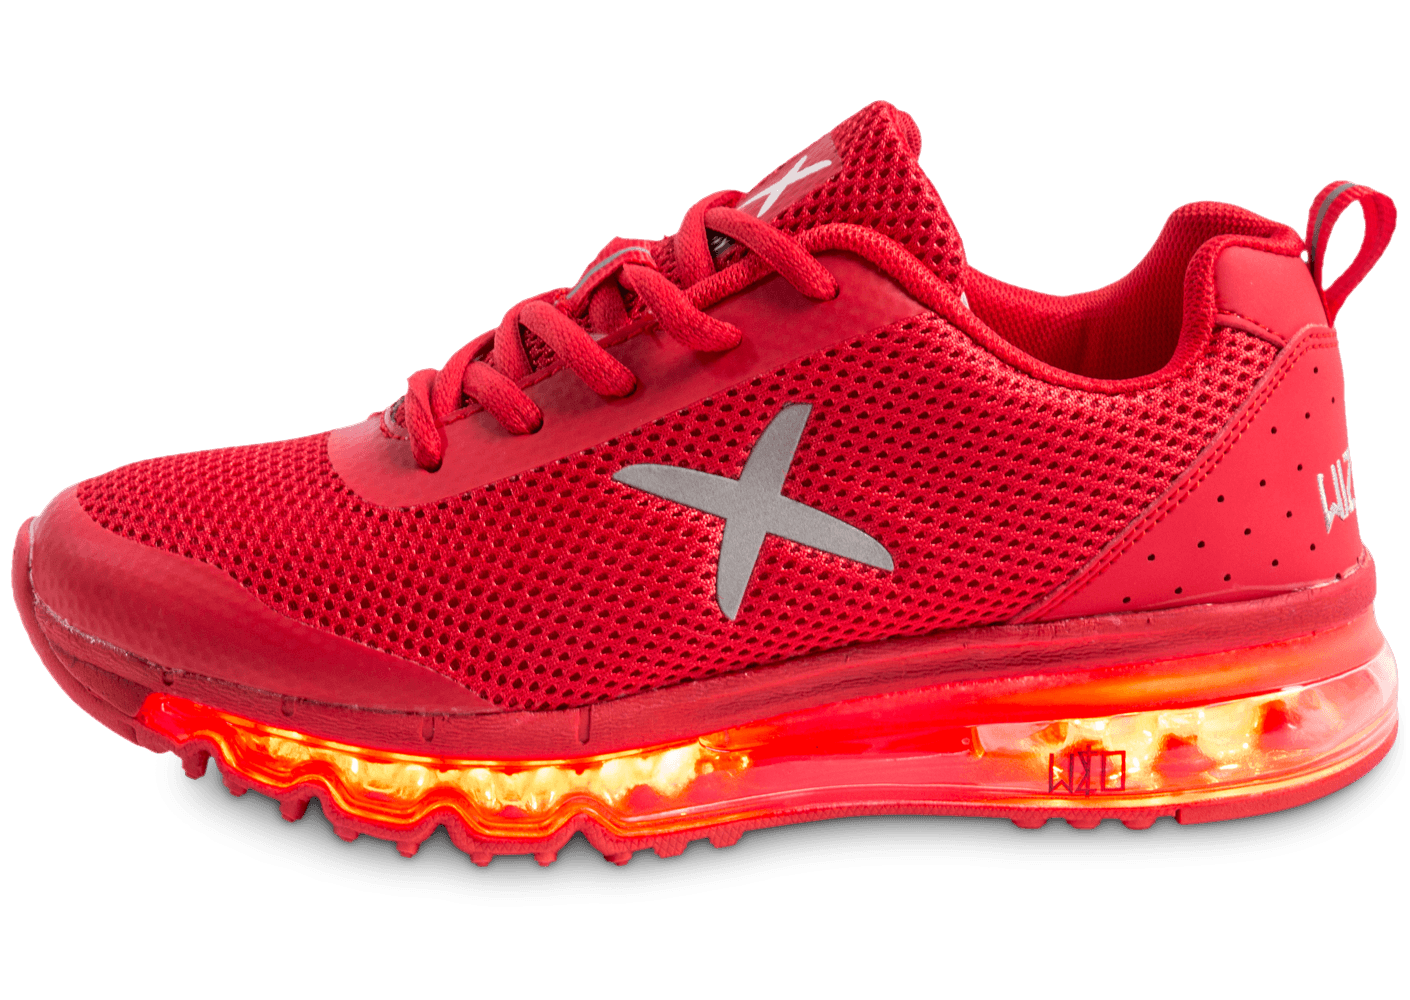 wize ope light xrun led f rouge chaussures chaussures chausport. Black Bedroom Furniture Sets. Home Design Ideas